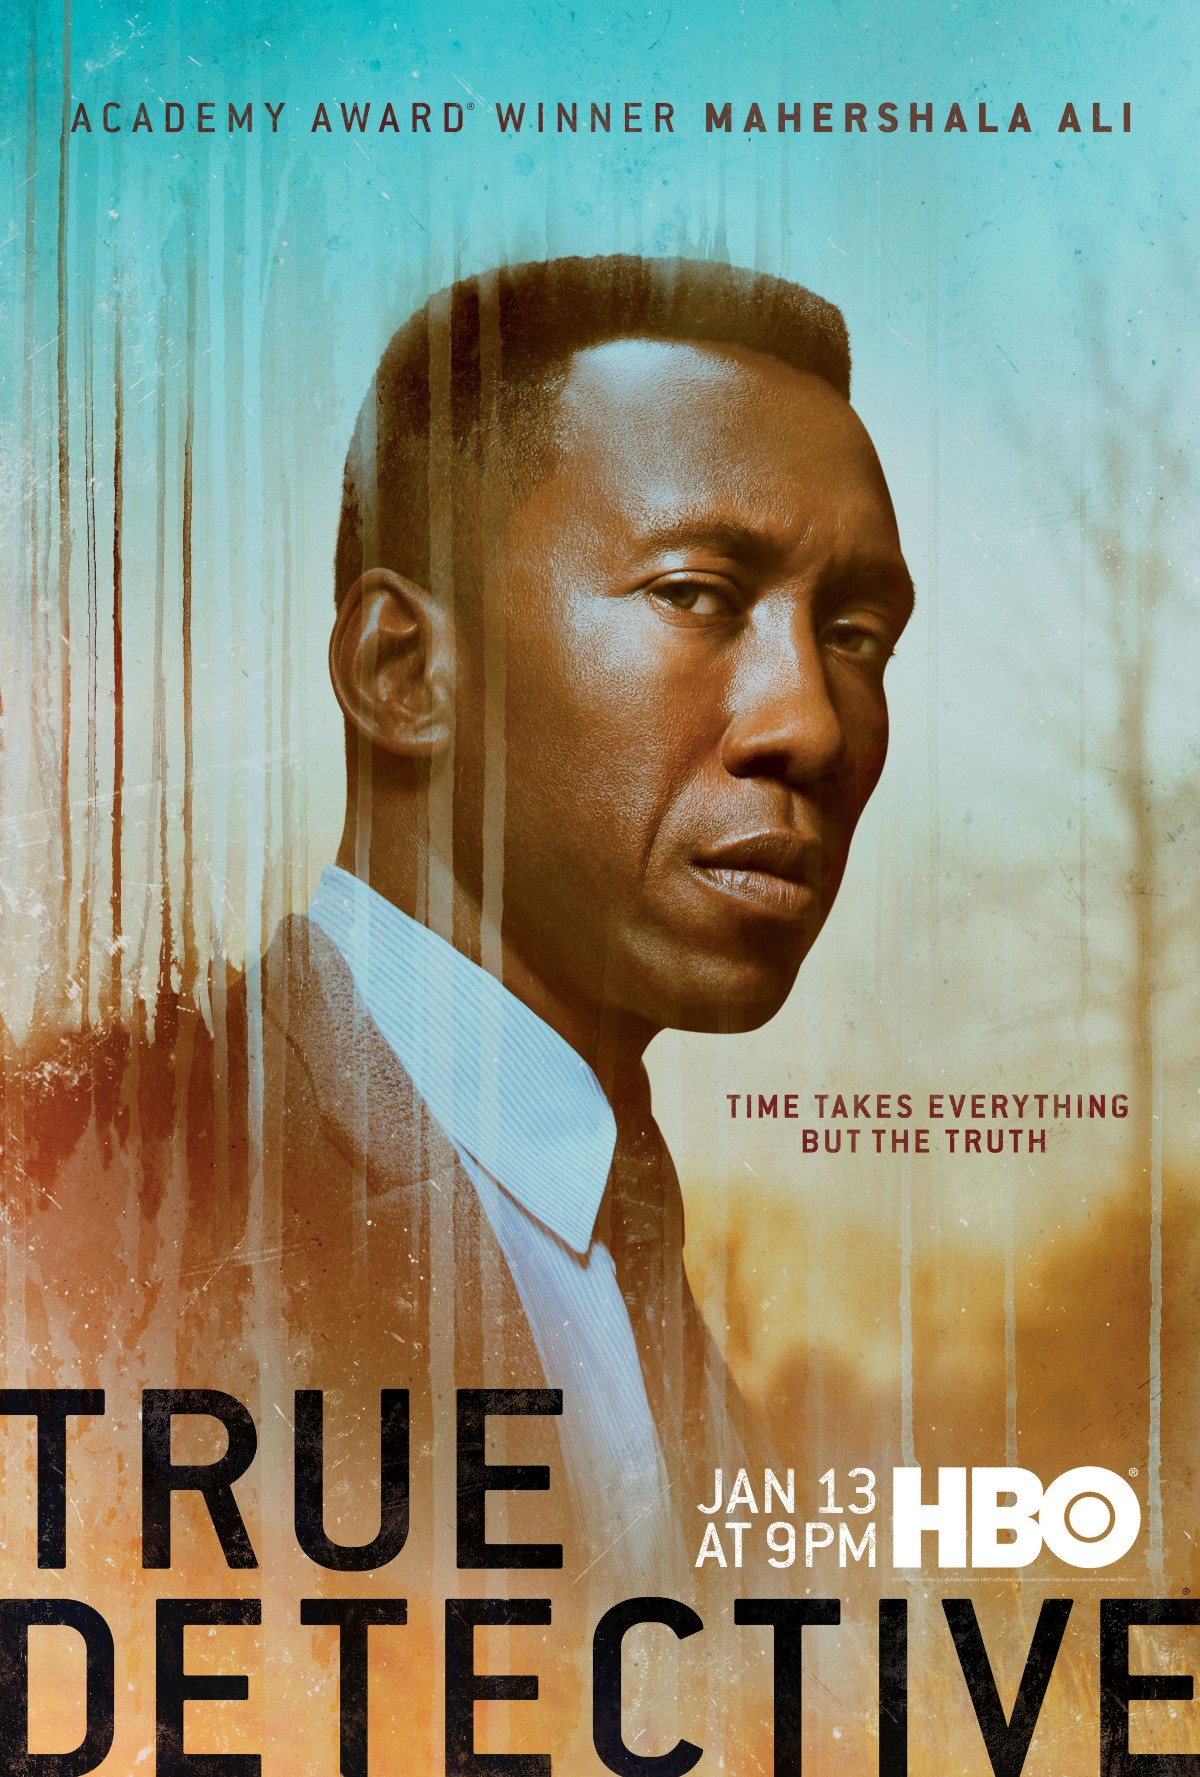 True Detective (TV Series 2014– ) - IMDb